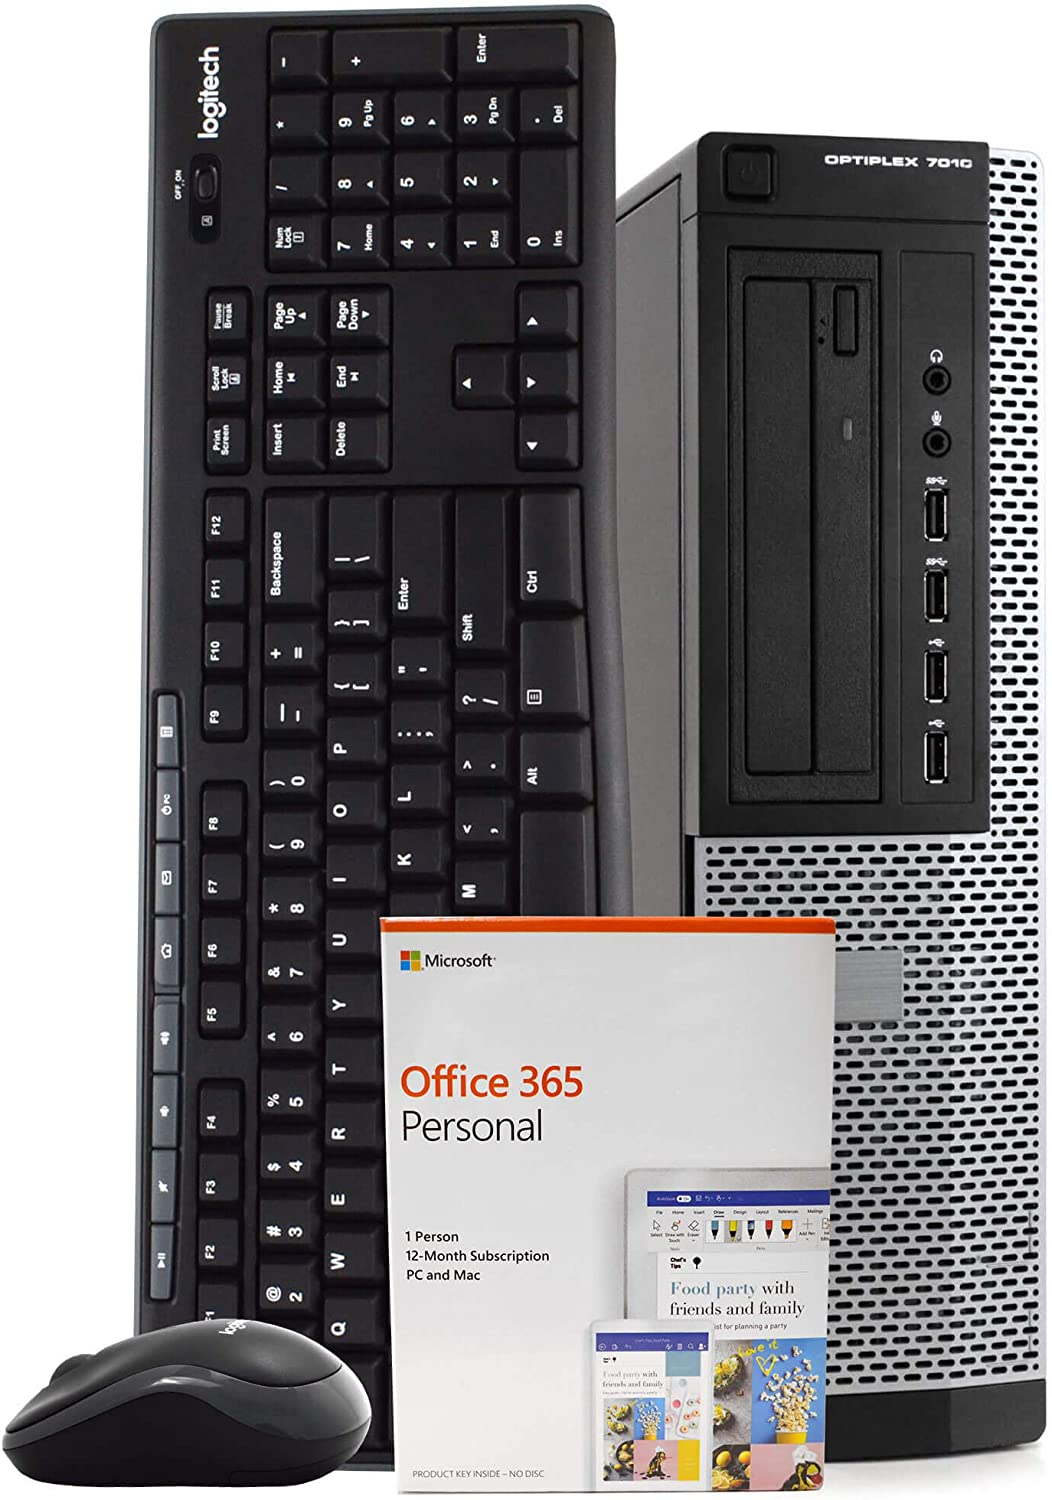 Dell OptiPlex 7010 PC Desktop Computer, Intel Quad Core i7-3770, 8GB RAM, 500GB HDD, Windows 10 Pro, Microsoft Office 365 Personal, New 16GB Flash Drive, Wireless Keyboard & Mouse, DVD, WiFi (Renewed)